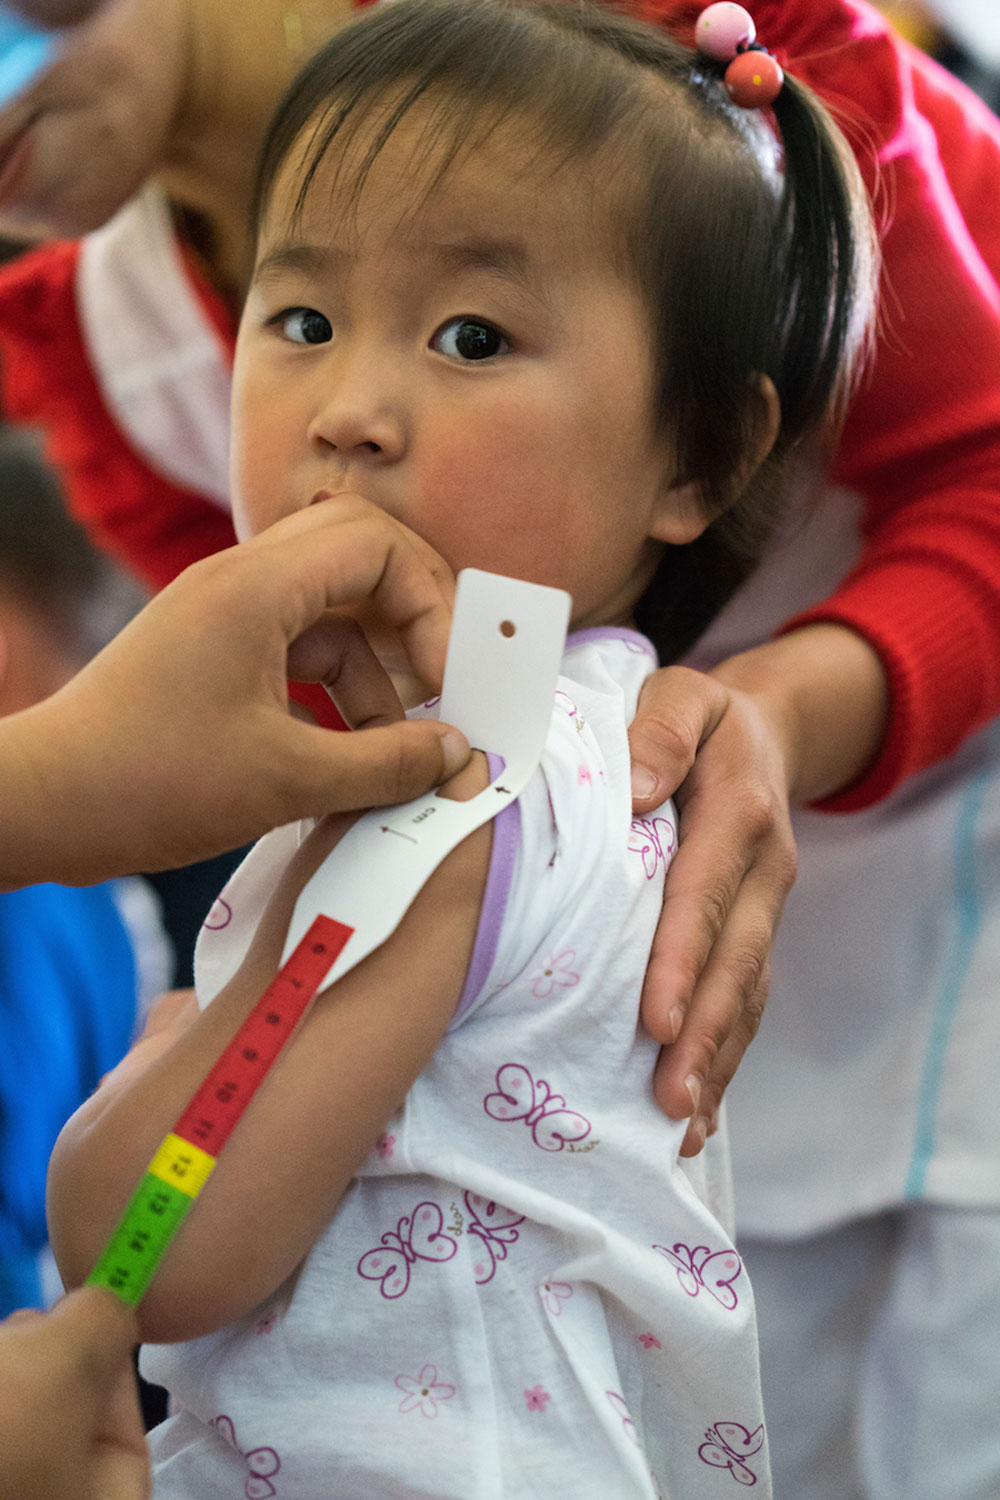 A girl is screened to identify her nutritional status and see if she needs to be referred for additional assistance